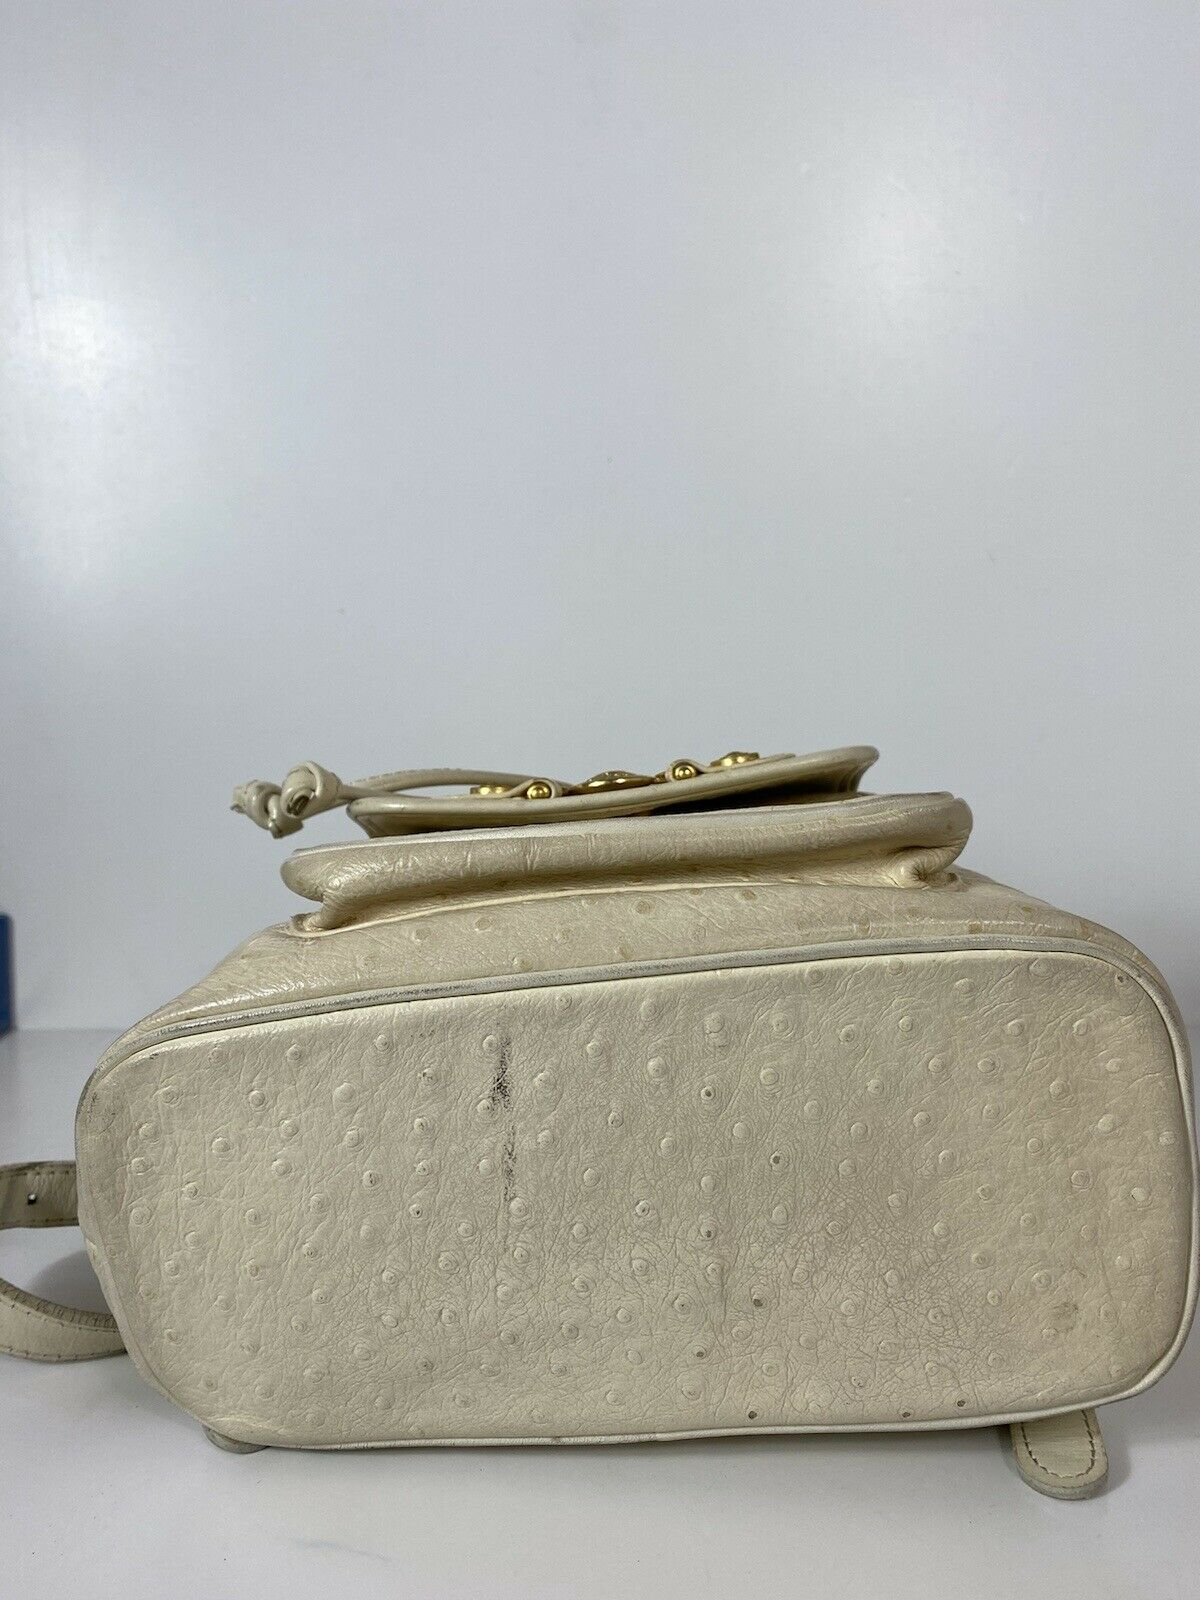 RARE VTG GIANNI VERSACE 90S WHITE OSTRICH BACKPACK - image 4